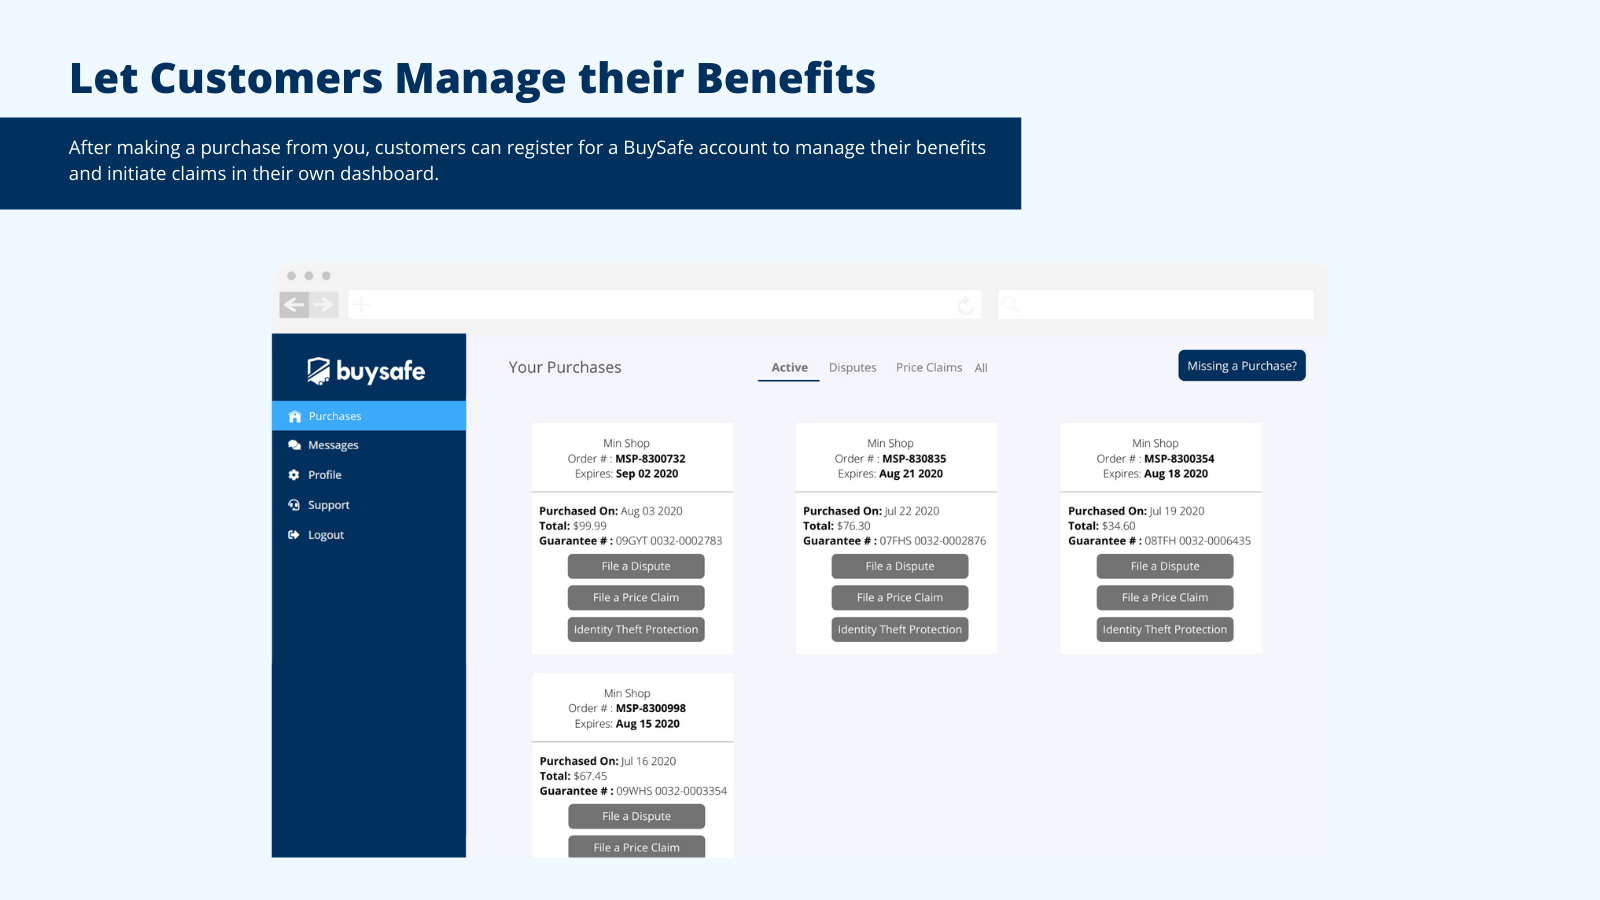 Shoppers can manage their BuySafe benefits in a dashboard